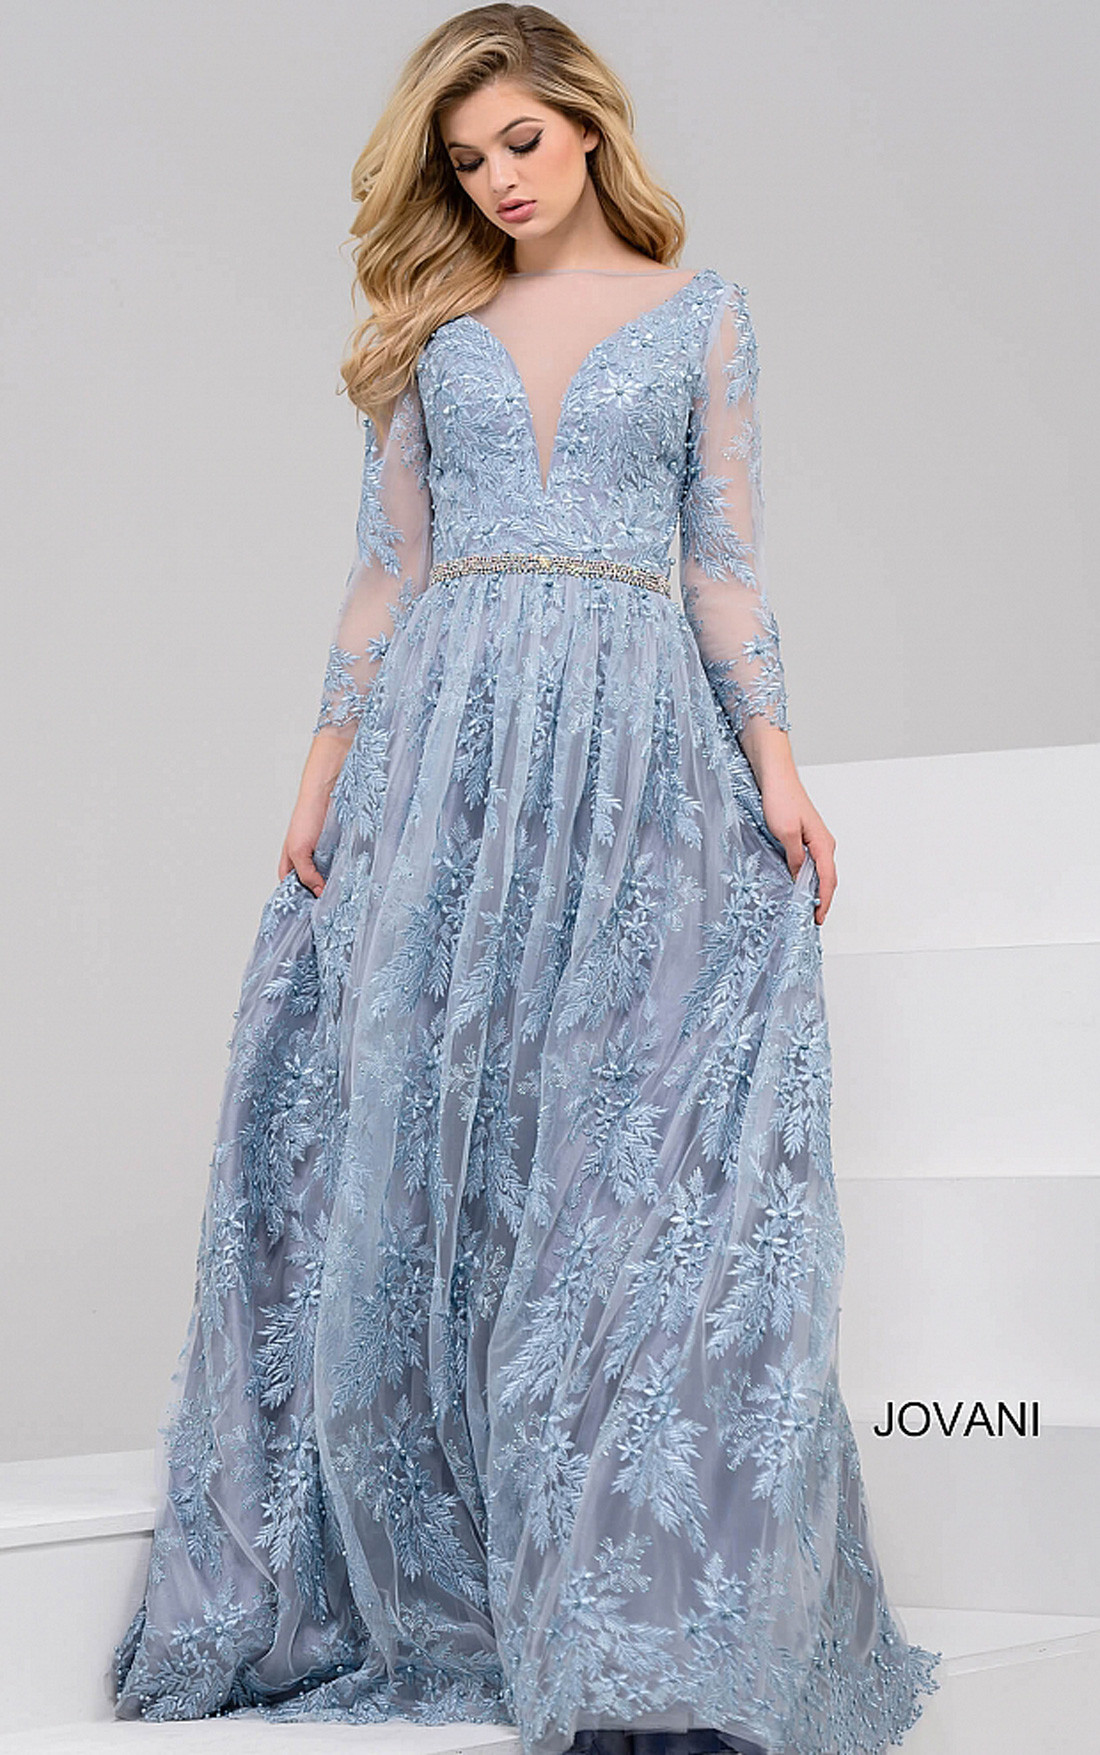 Jovani Dresses | Womens Powder Blue Long Sleeve Embroidery Gown ...